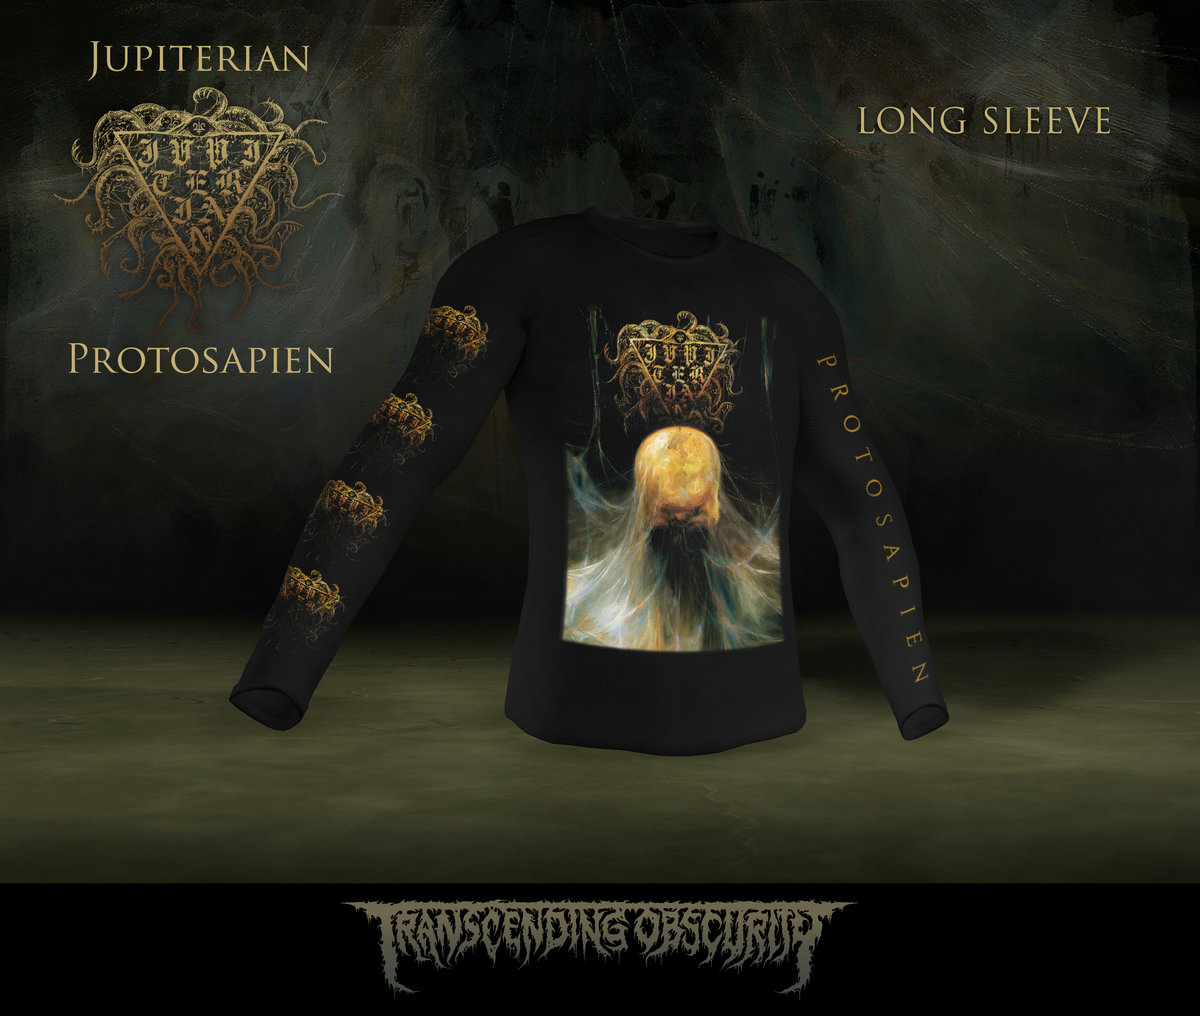 JUPITERIAN - Protosapien Long Sleeve T-shirts (Limited to 50)